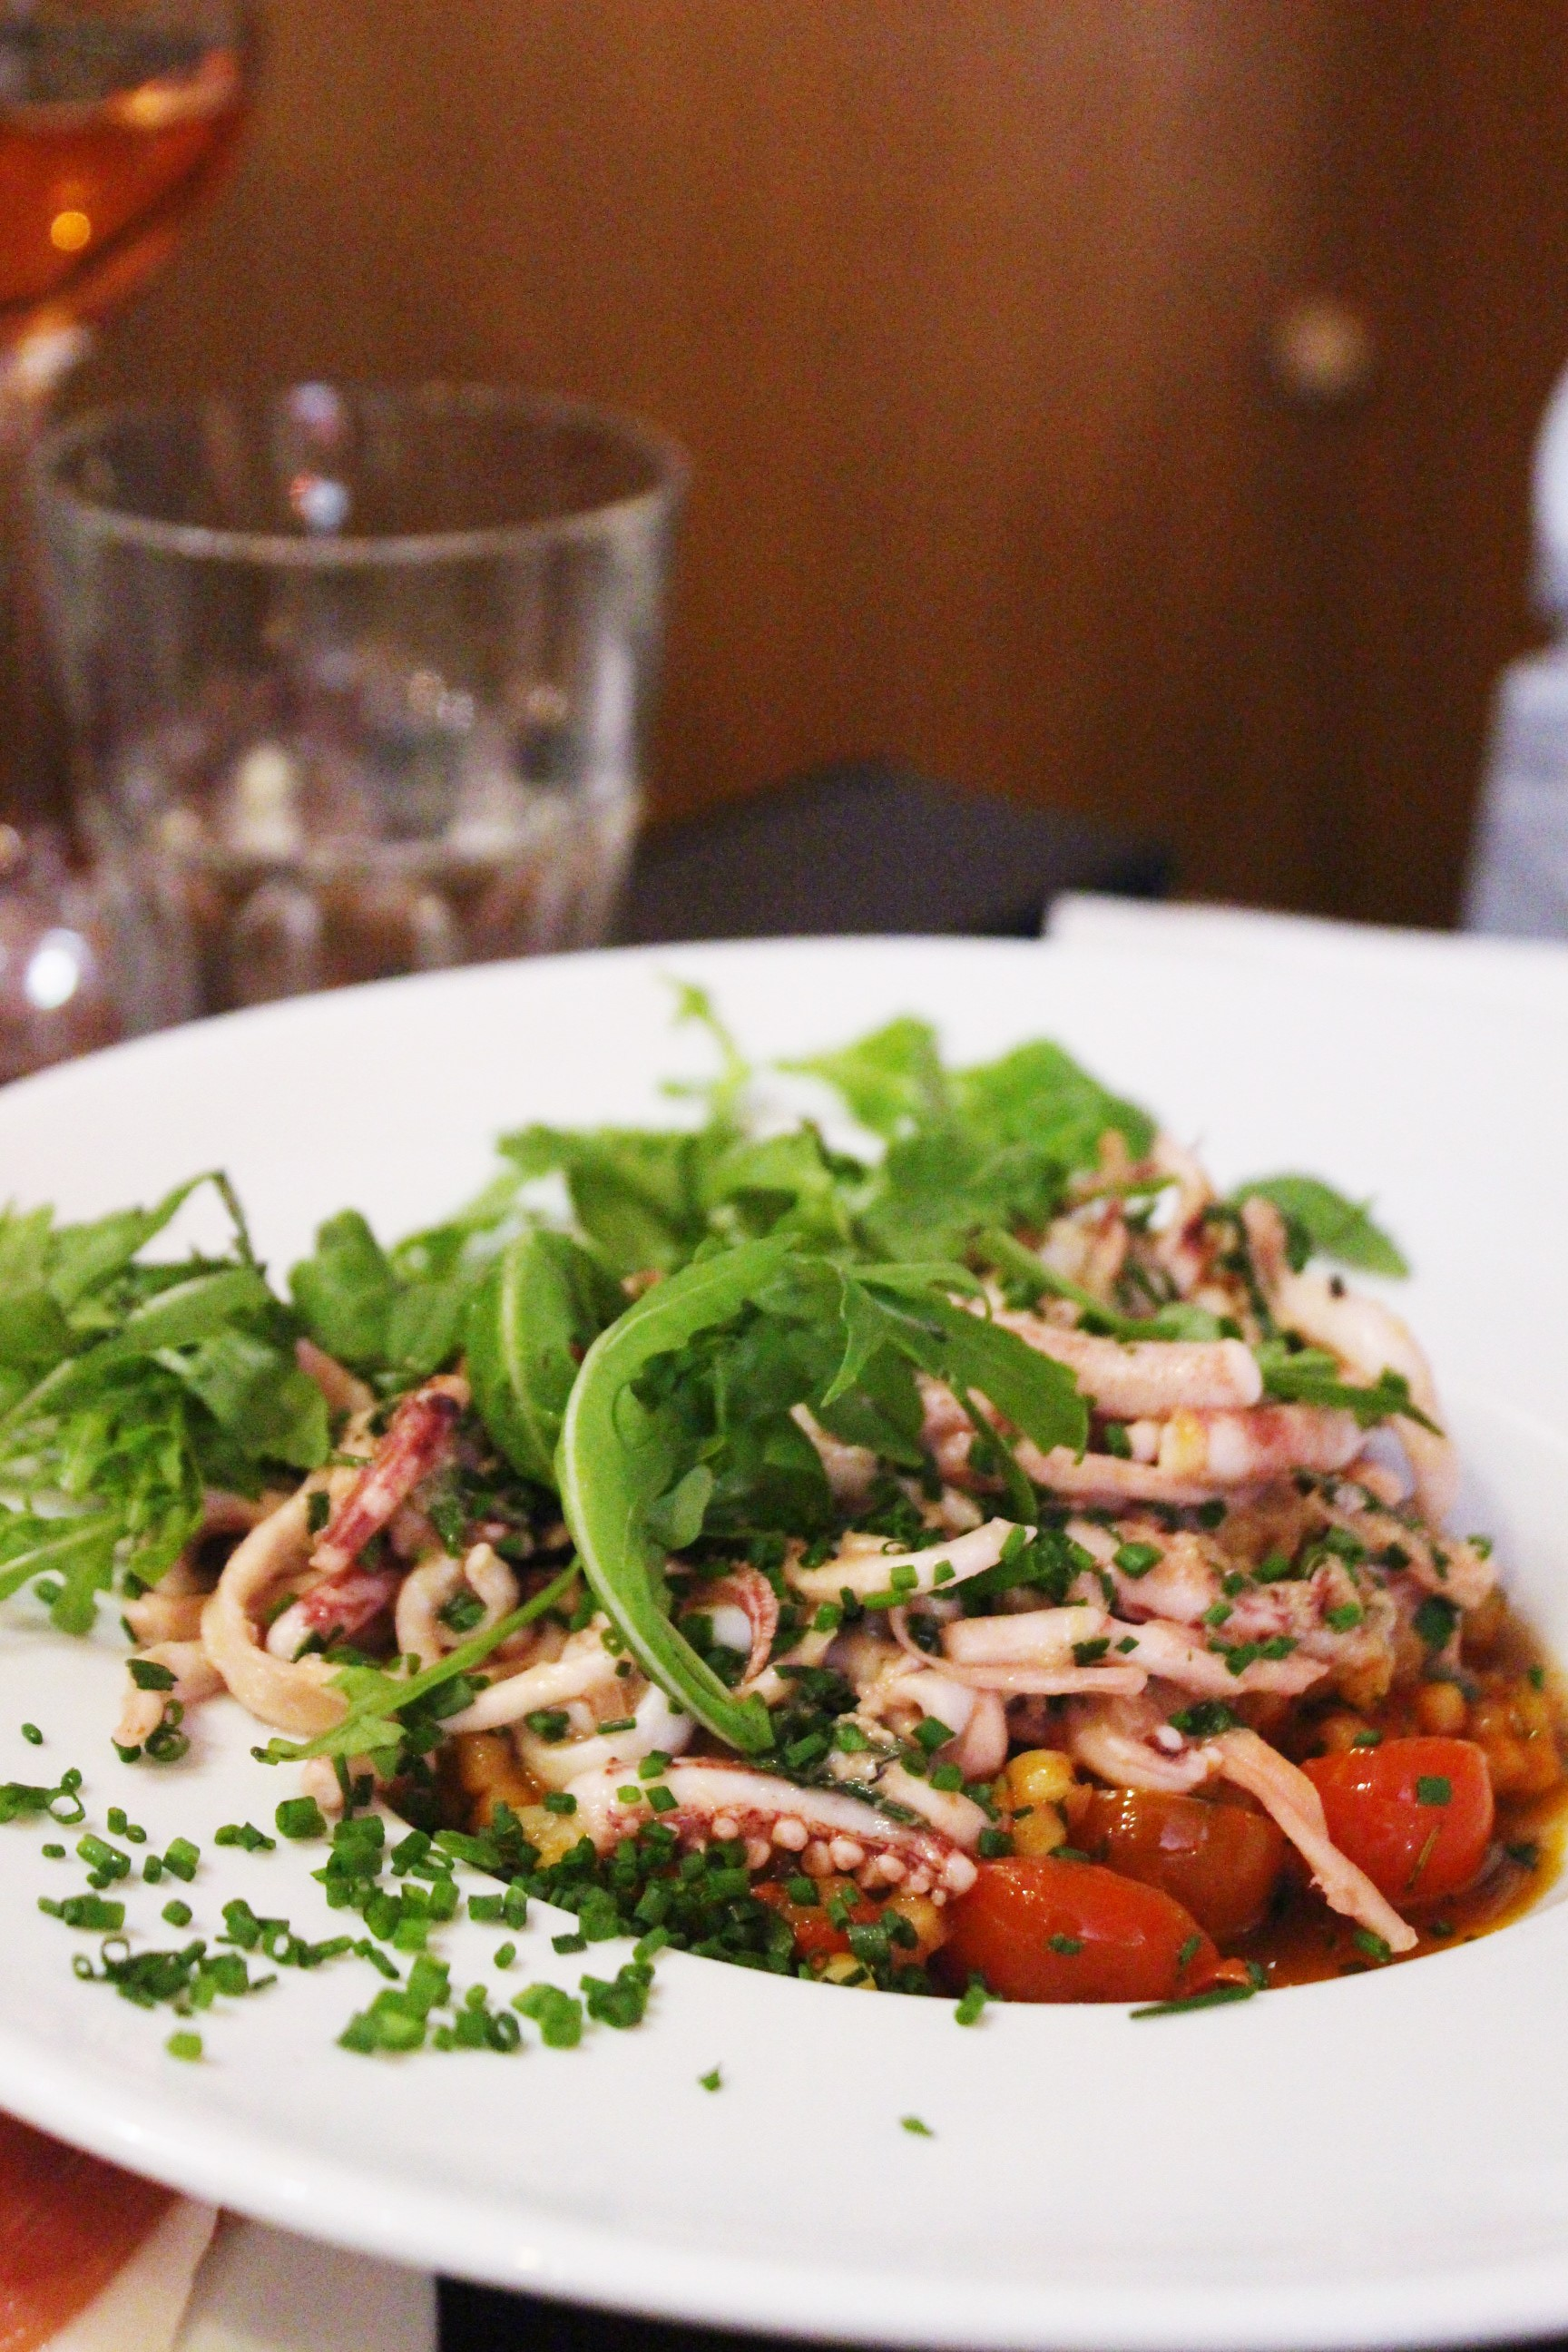 Calamari With Parsley, Ginger & Sesame; Sardinian Fregola With Cherry Tomatoes